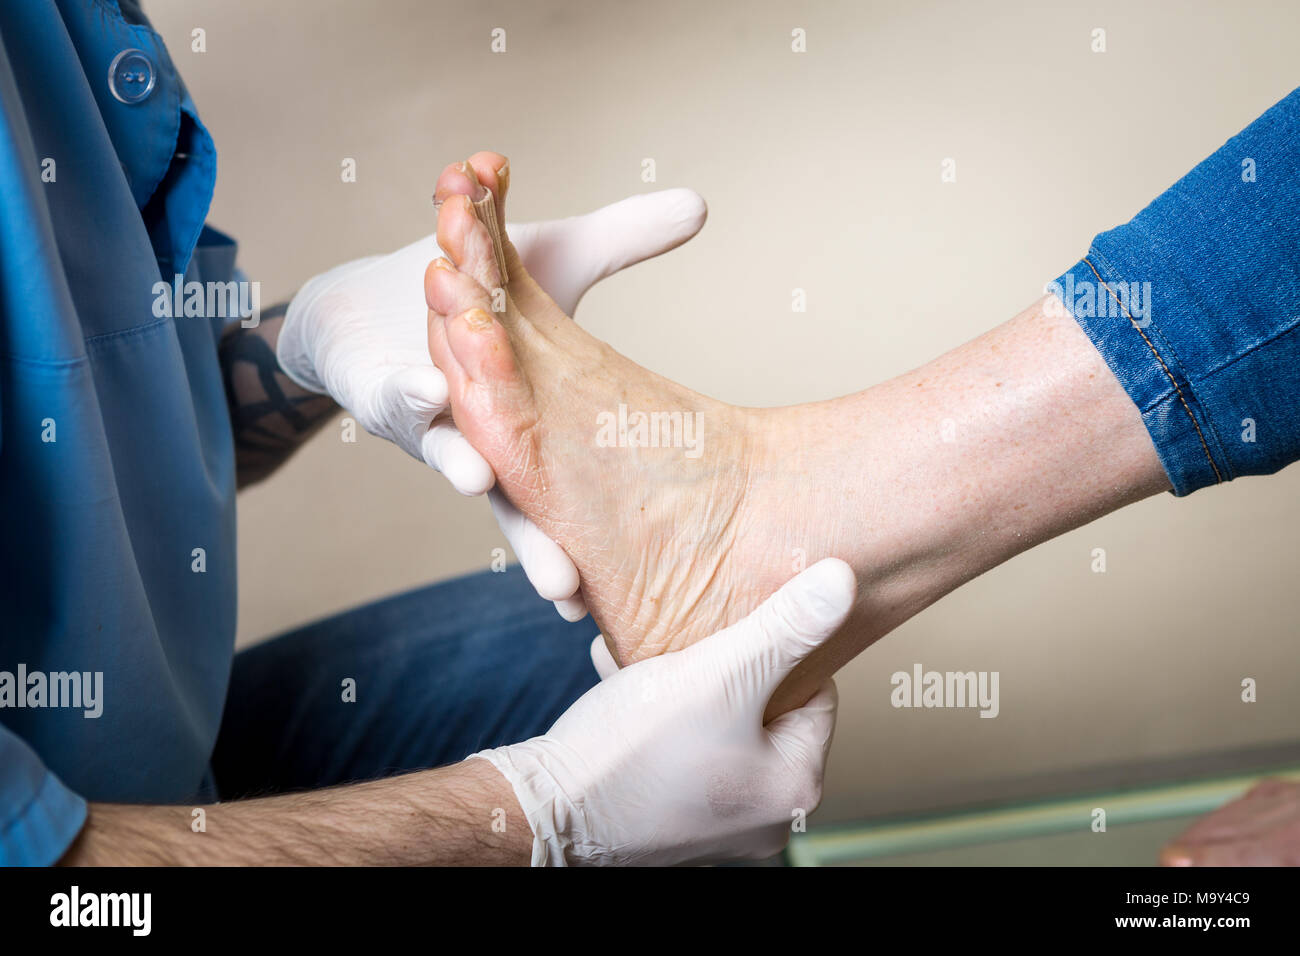 The hands of a young man doctor orthopedist conducts diagnostics, foot foot test of a woman, for the manufacture of individual, orthopedic insoles. - Stock Image